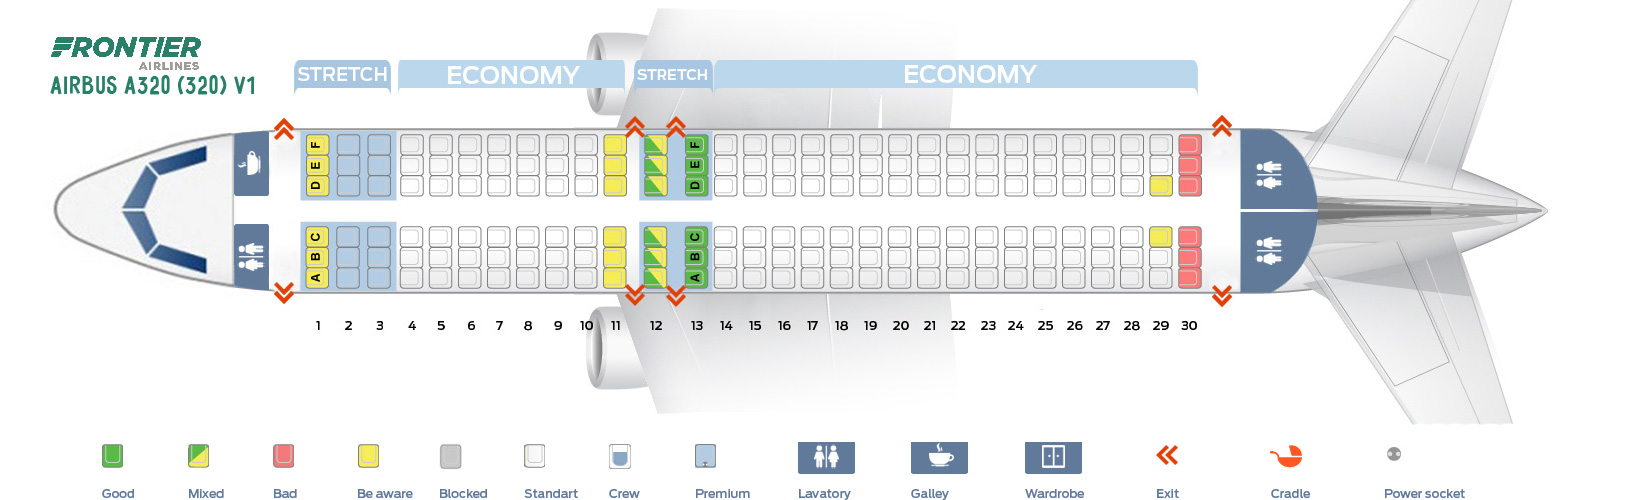 Seat Map Airbus A320-200 V1 Frontier Airlines